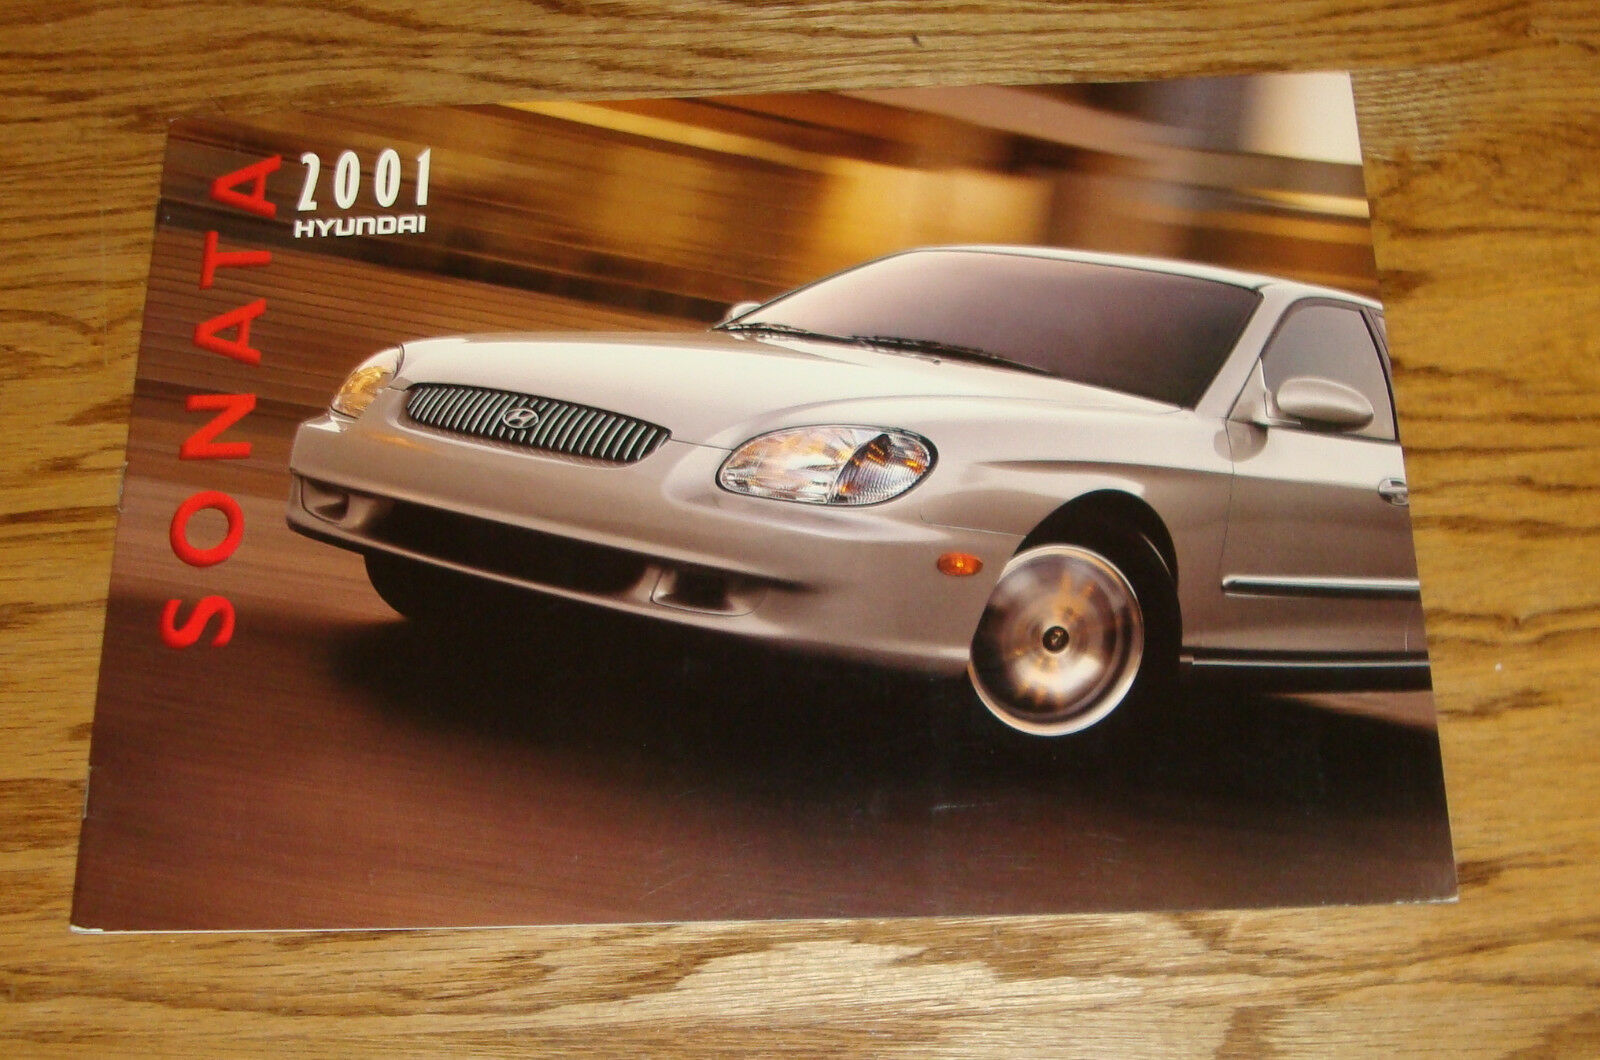 Original 2001 Hyundai Sonata Deluxe Sales Brochure 01 1 of 2Only 1  available ...